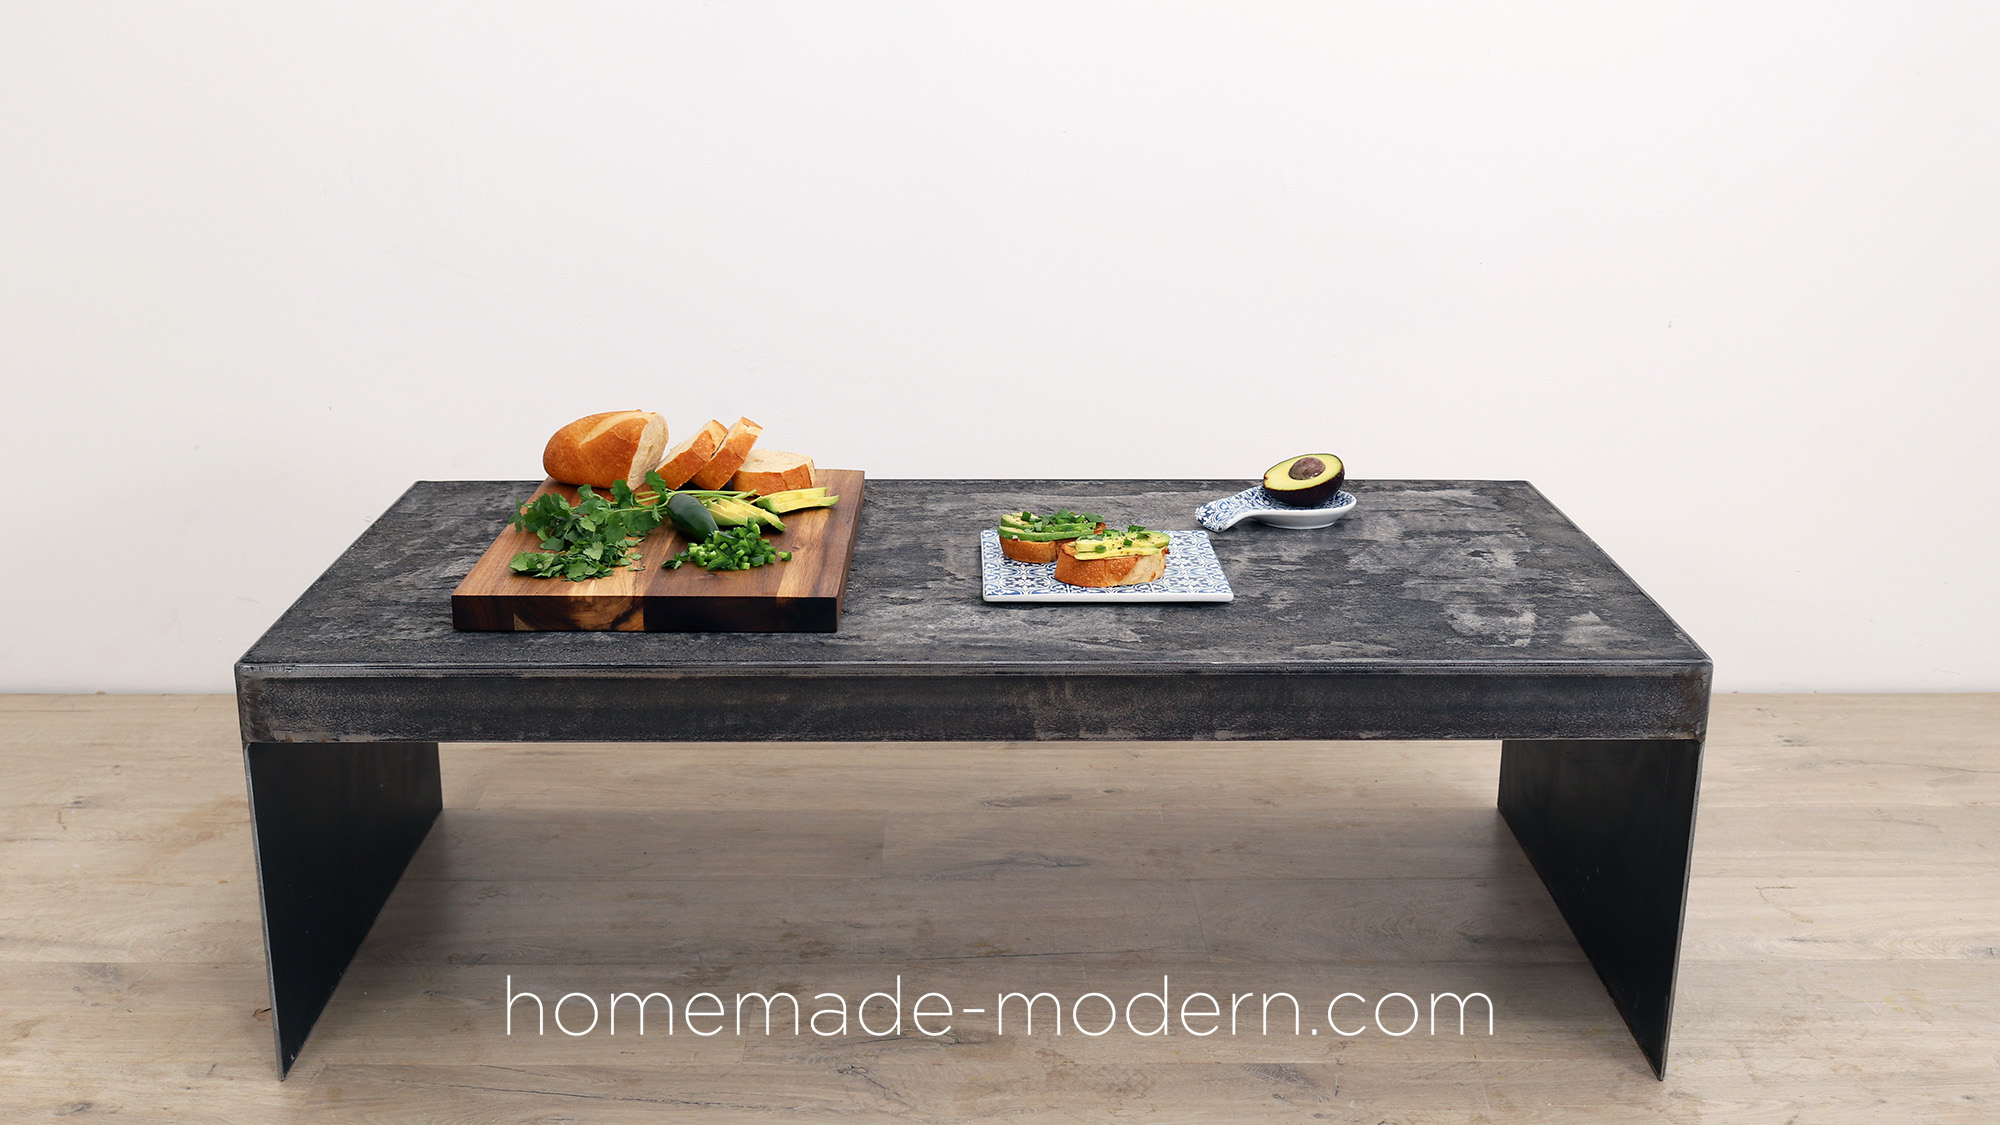 http://www.homemade-modern.com/wp-content/uploads/2019/03/blackconcretetable-final002.jpg